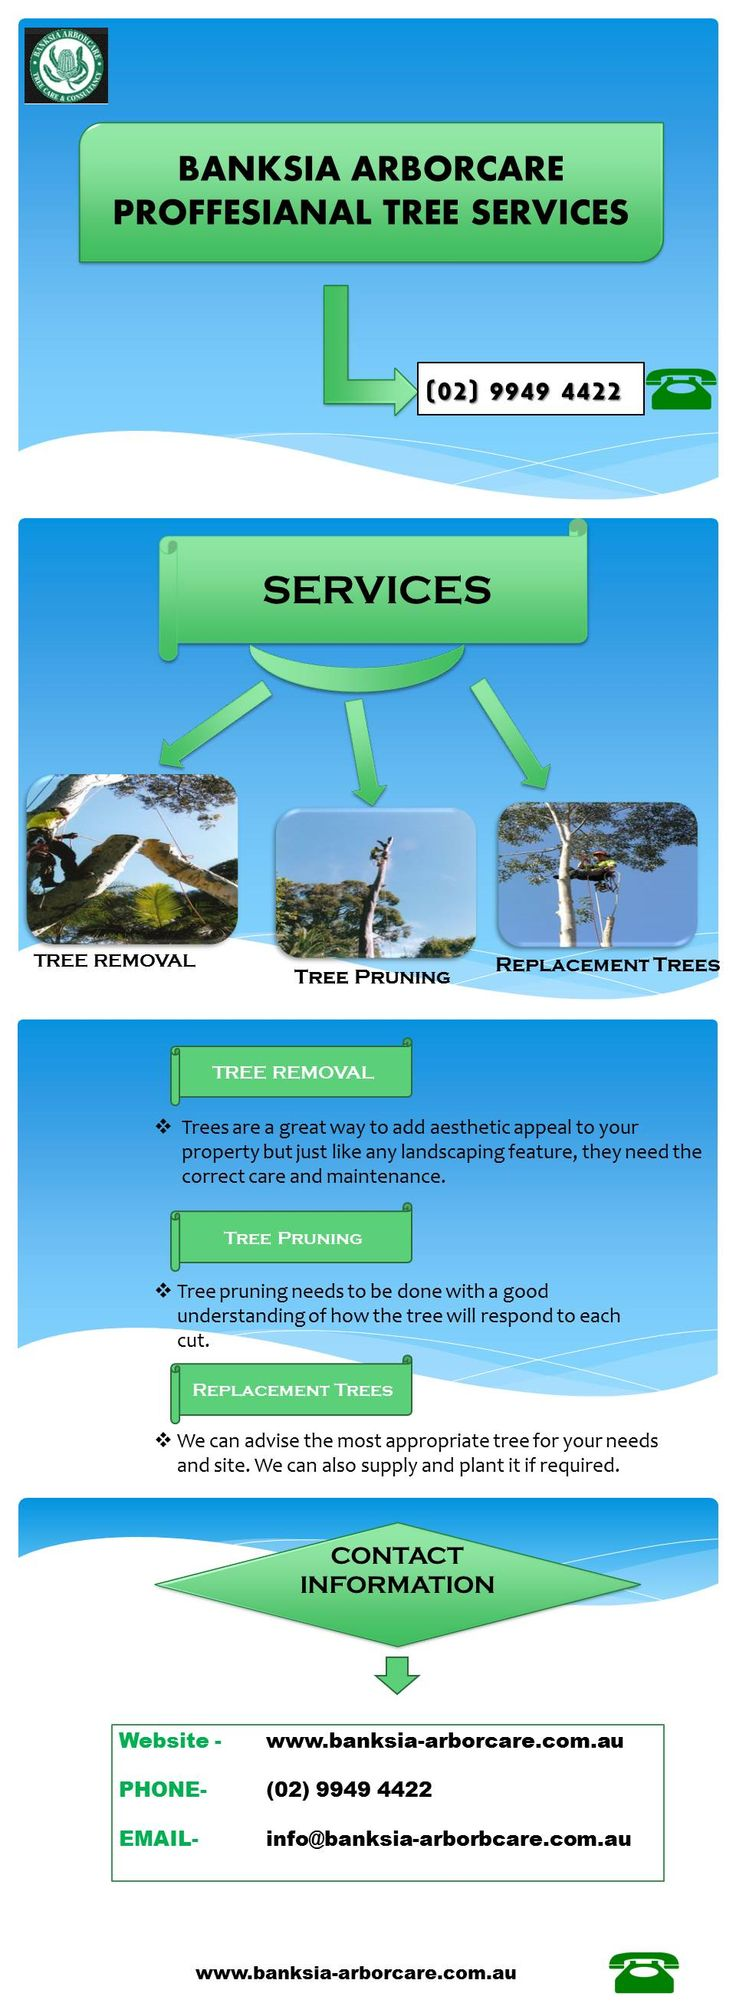 Tree borers amp bark beetles arborx tree health care - Banksia Arborcare Offers Tree Removal Services In Sydney And Able To Work With You Safely And